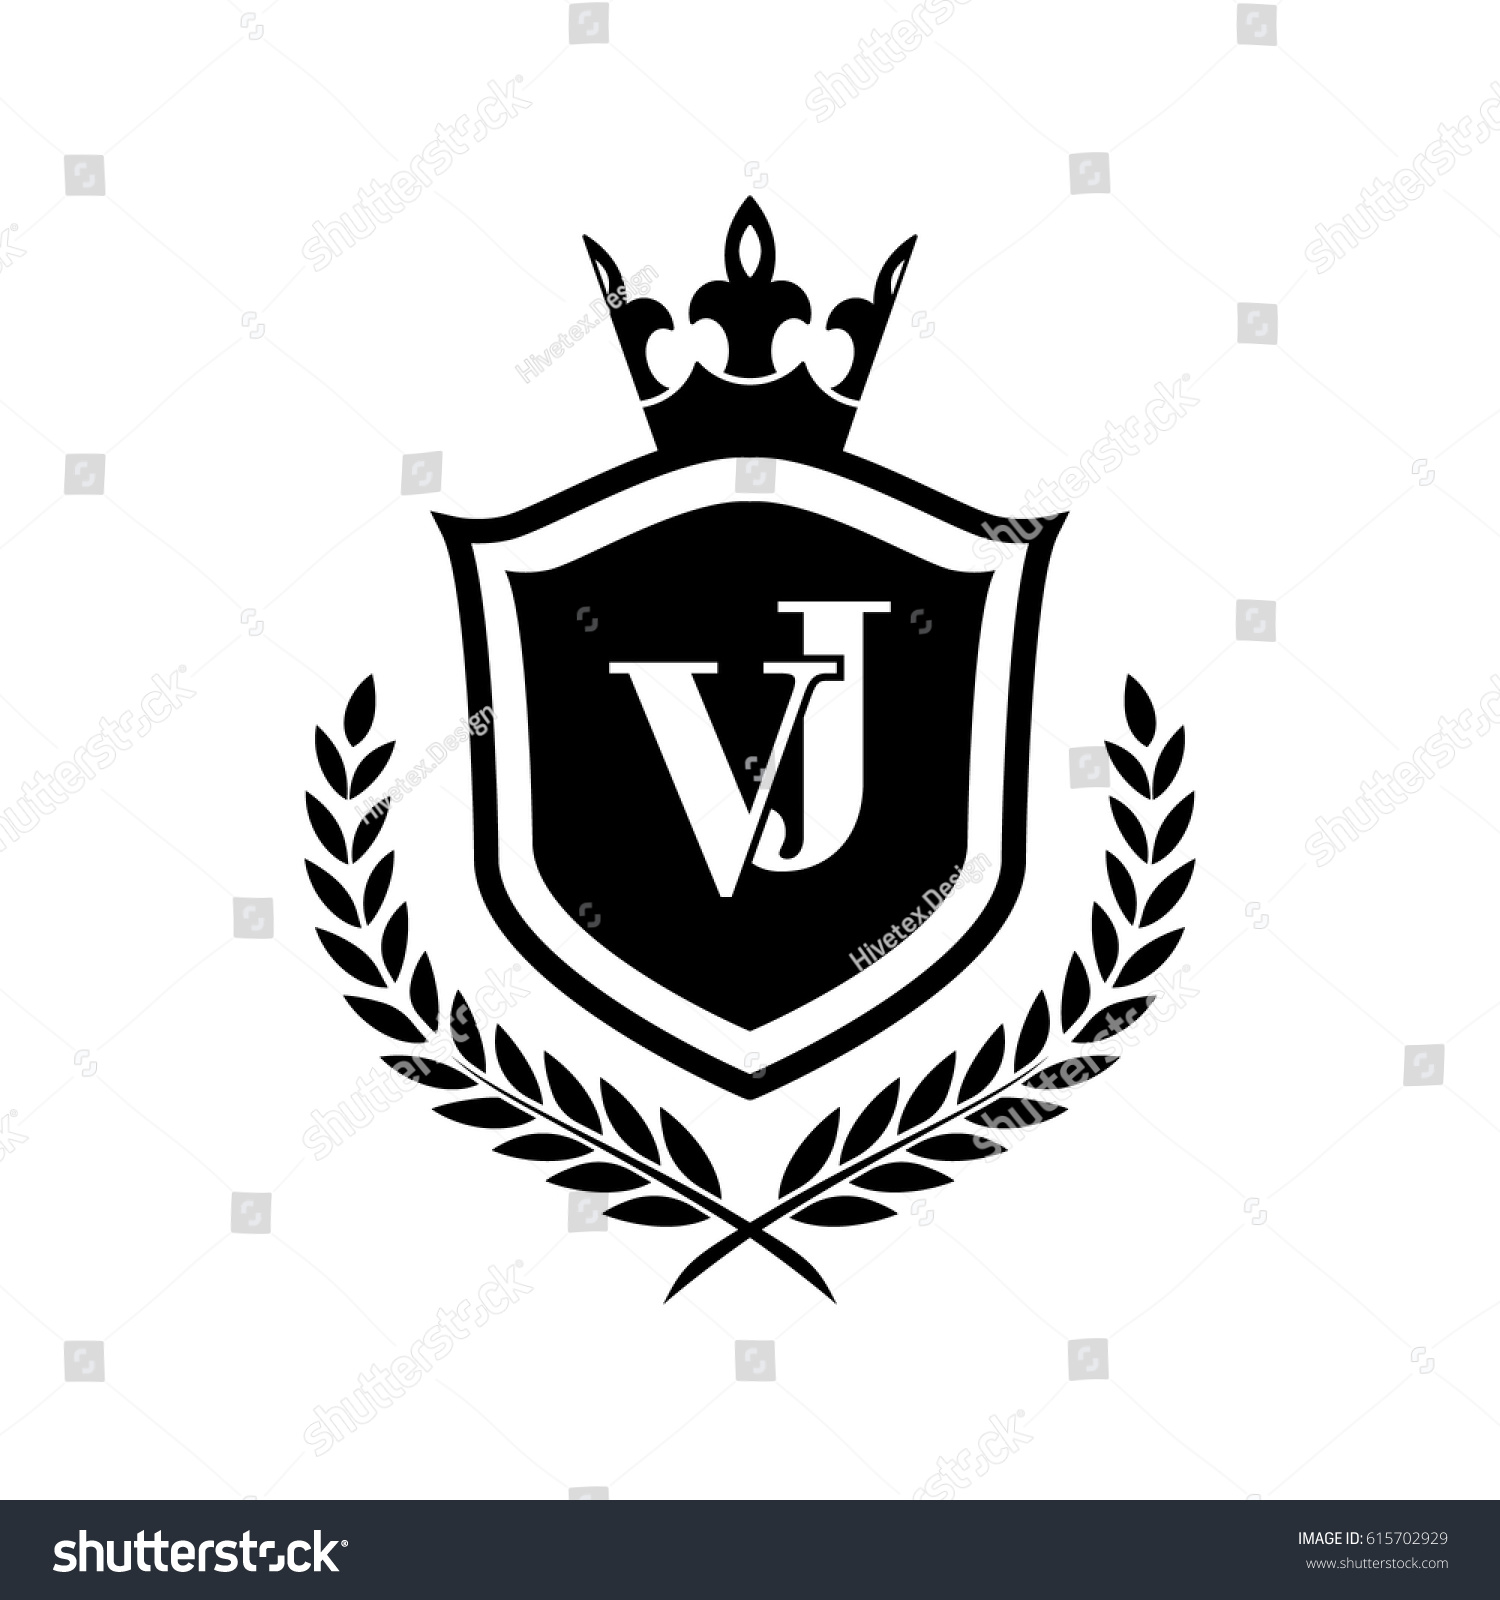 vj logo stock vector royalty free 615702929 shutterstock